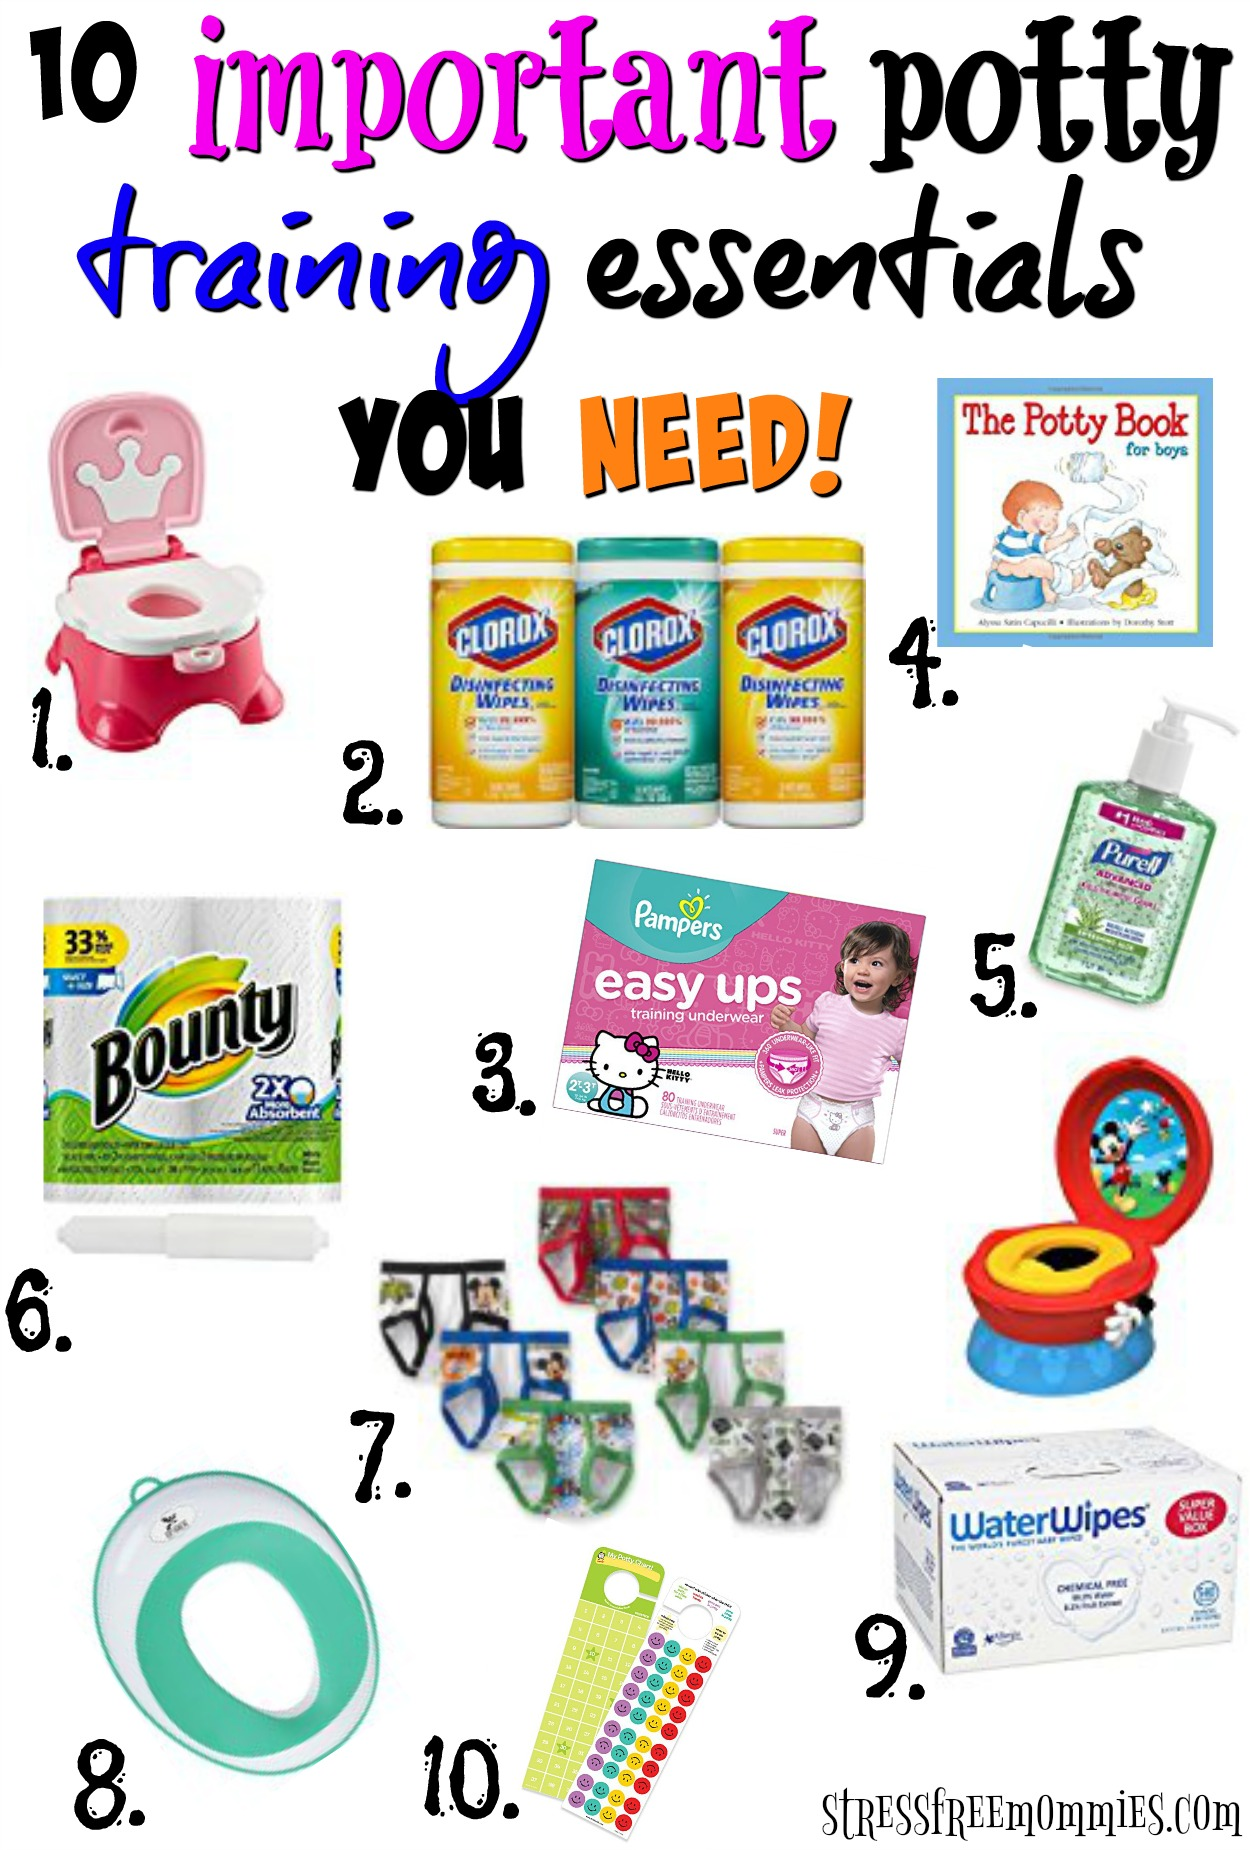 Are you ready to start potty training your toddler? Find out what items you need to stock up on in order to potty train your child fast and stress free!